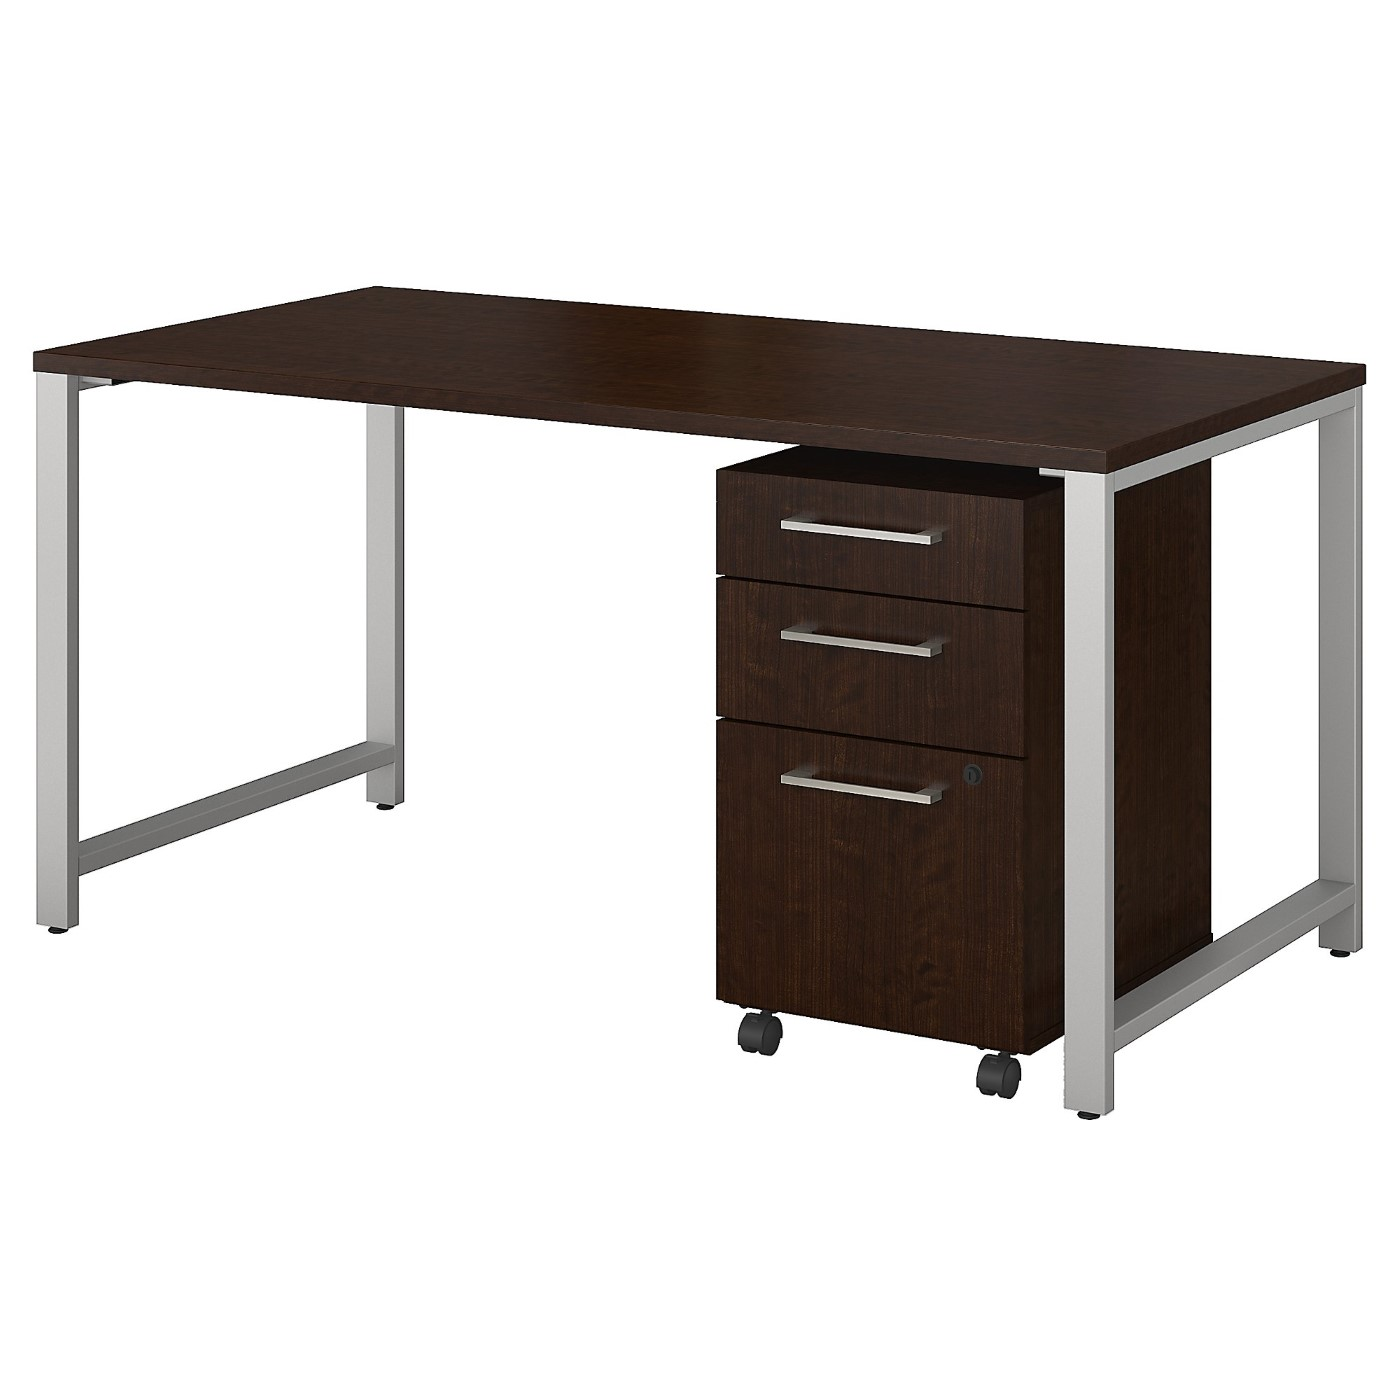 BUSH BUSINESS FURNITURE 400 SERIES 60W X 30D TABLE DESK WITH 3 DRAWER MOBILE FILE CABINET. FREE SHIPPING